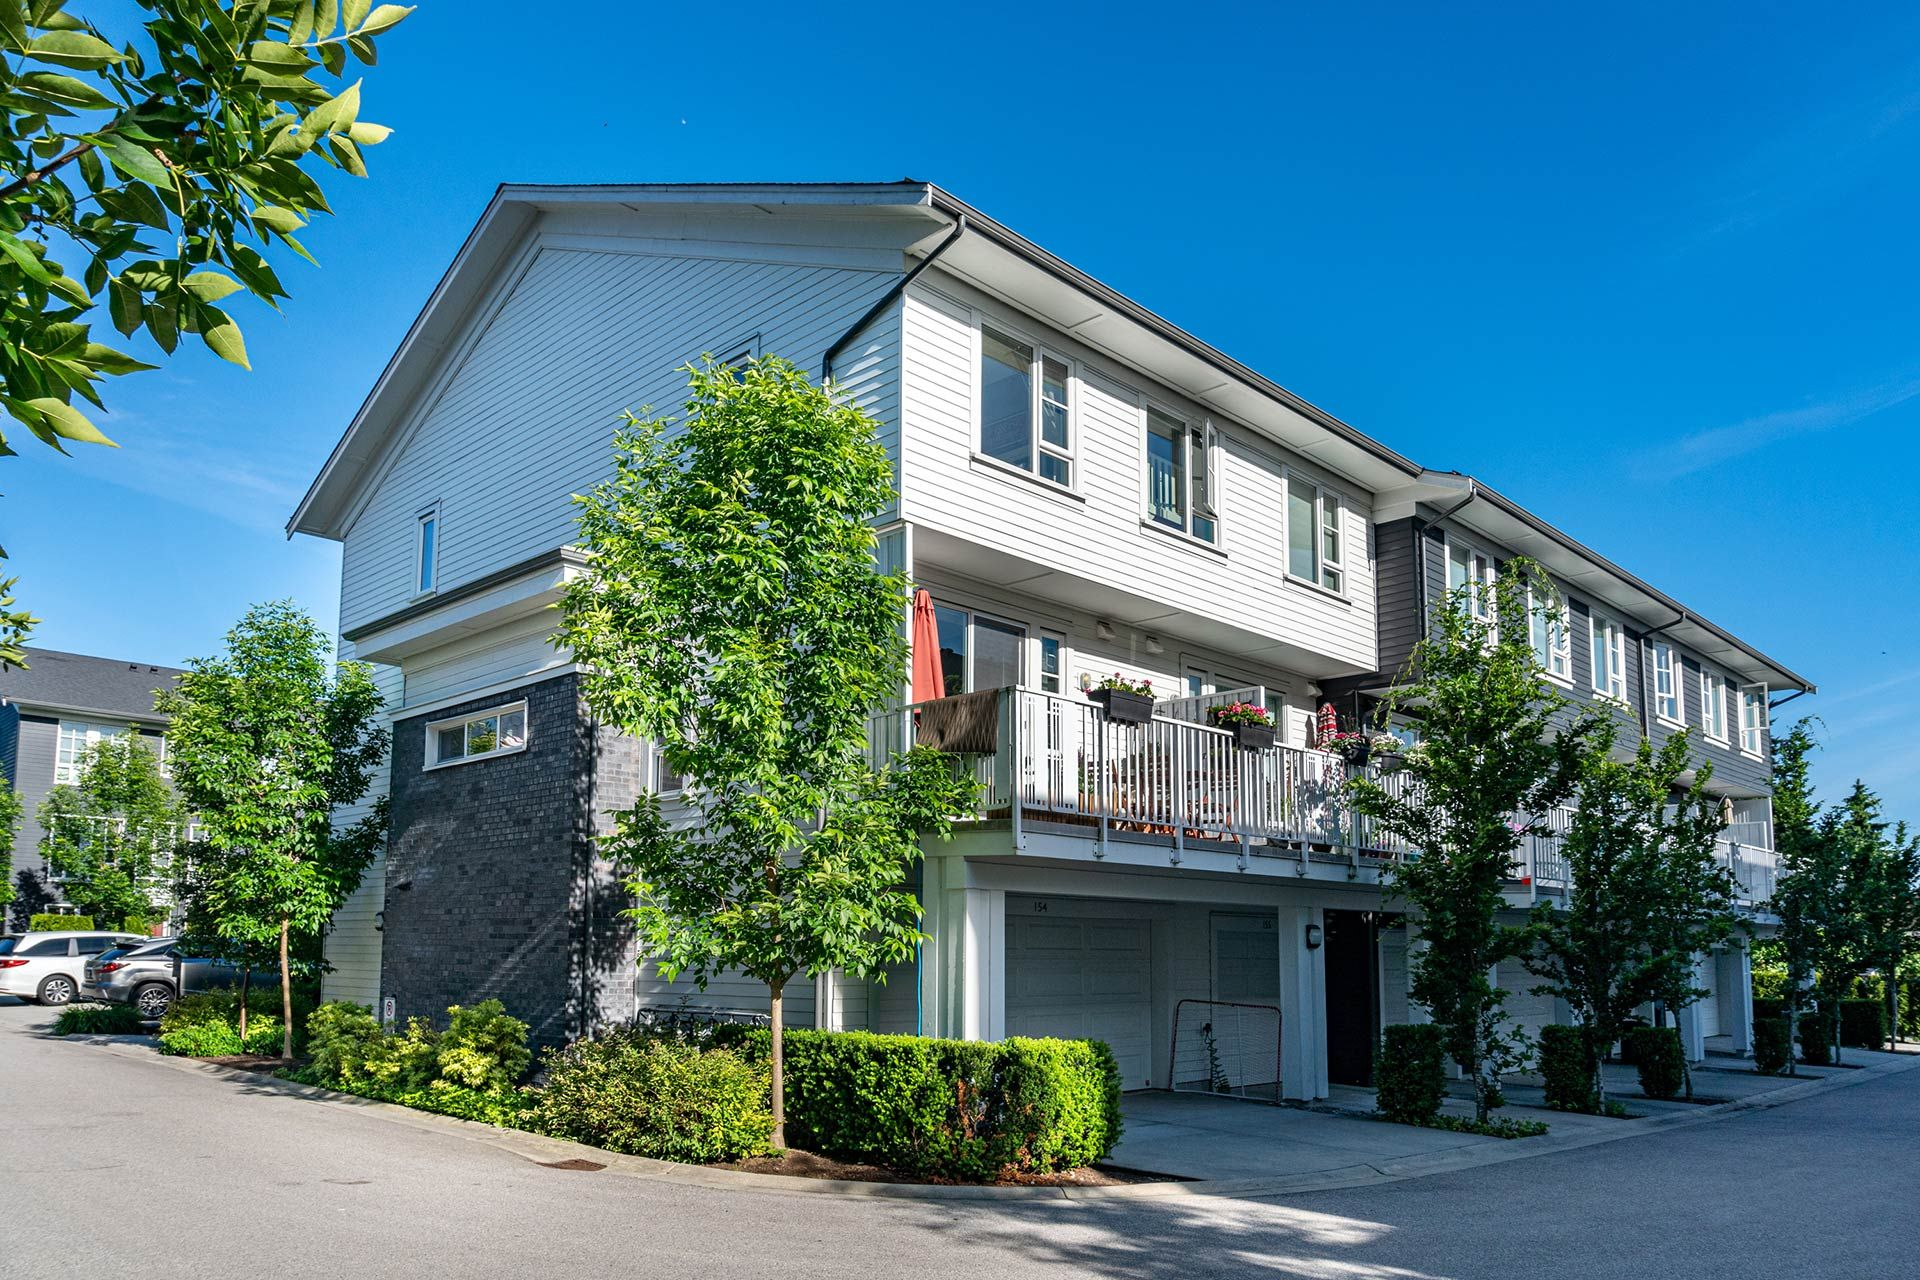 """Main Photo: 154 548 FOSTER Avenue in Coquitlam: Coquitlam West Townhouse for sale in """"BLACK + WHITE"""" : MLS®# R2587208"""